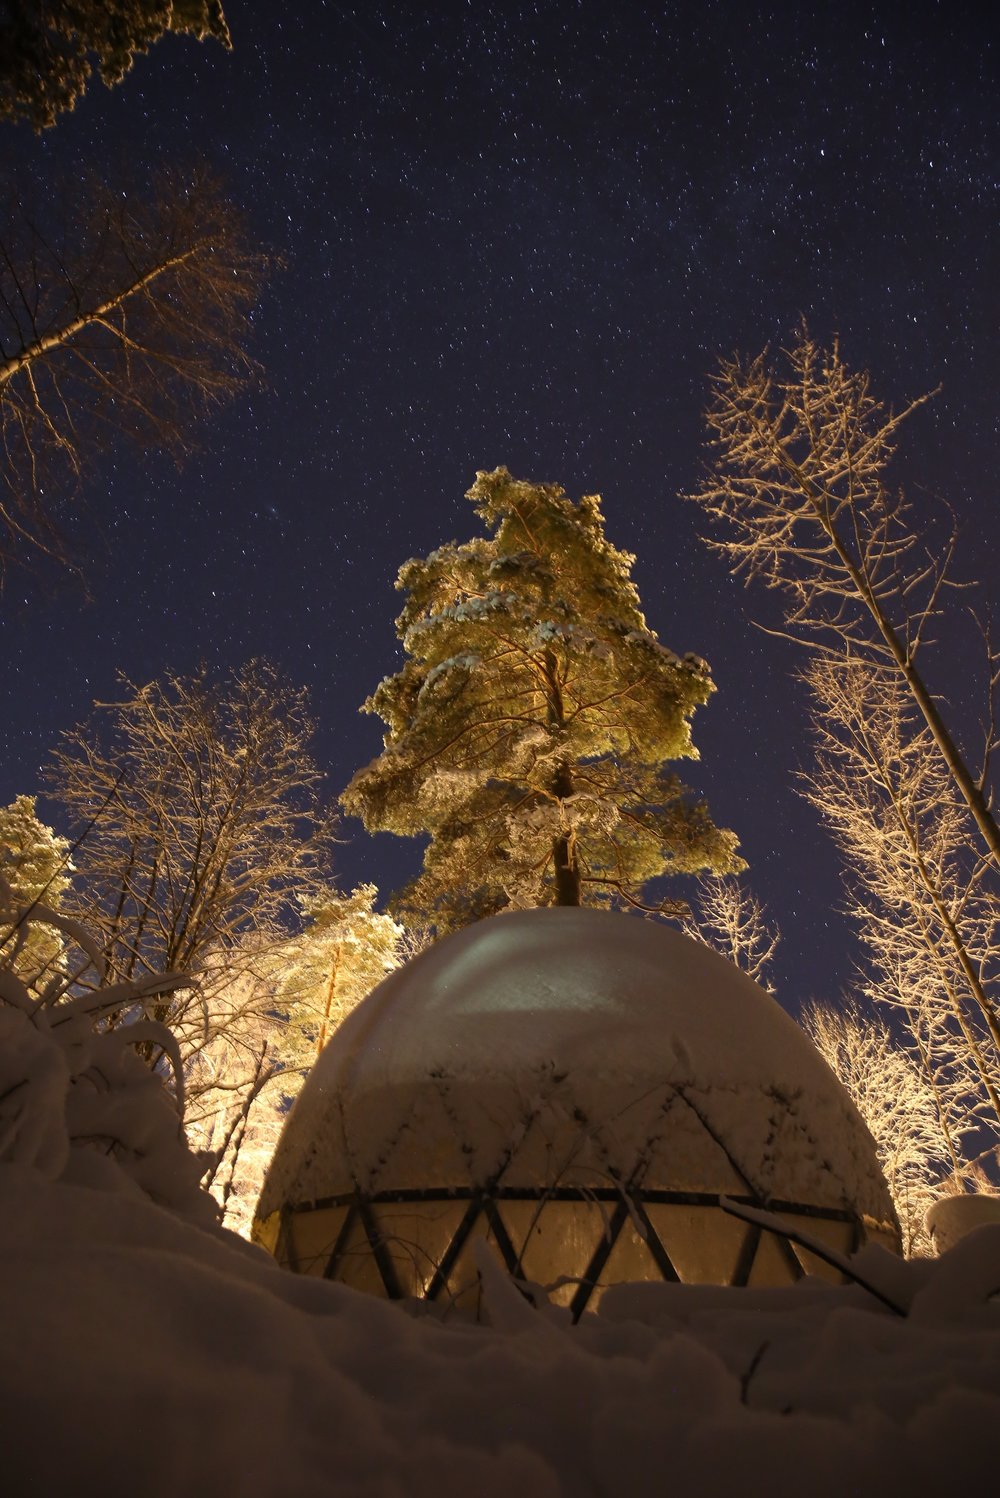 igloo in Finland under stars